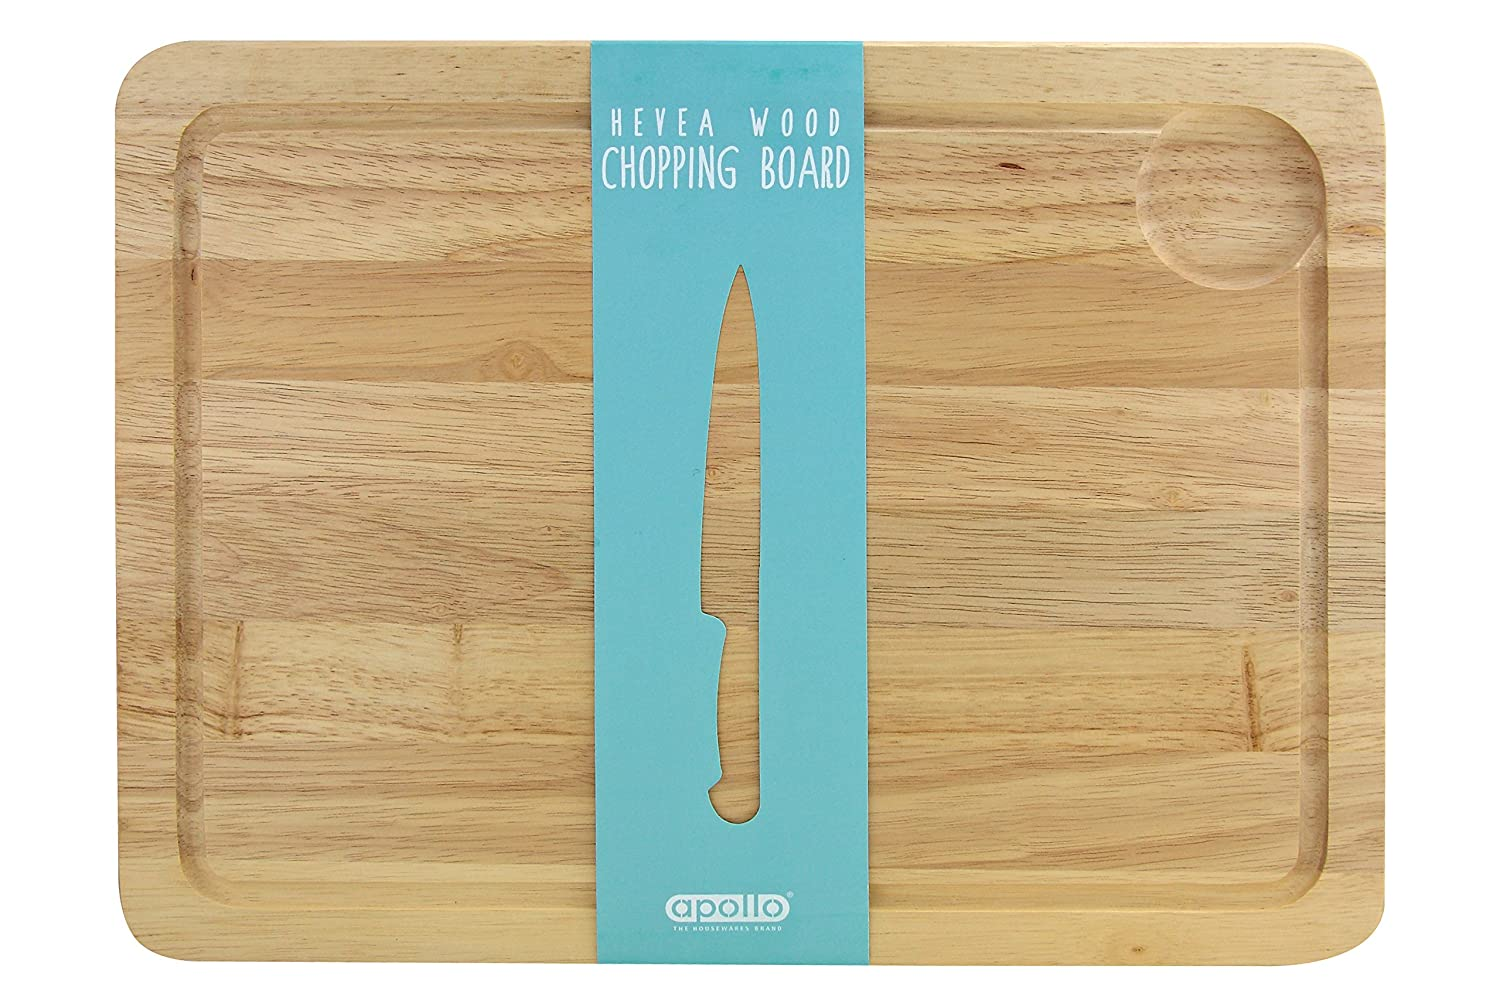 Apollo Rb 40 x 30 cm Meat Board Johnsons Veterinary Products 7311